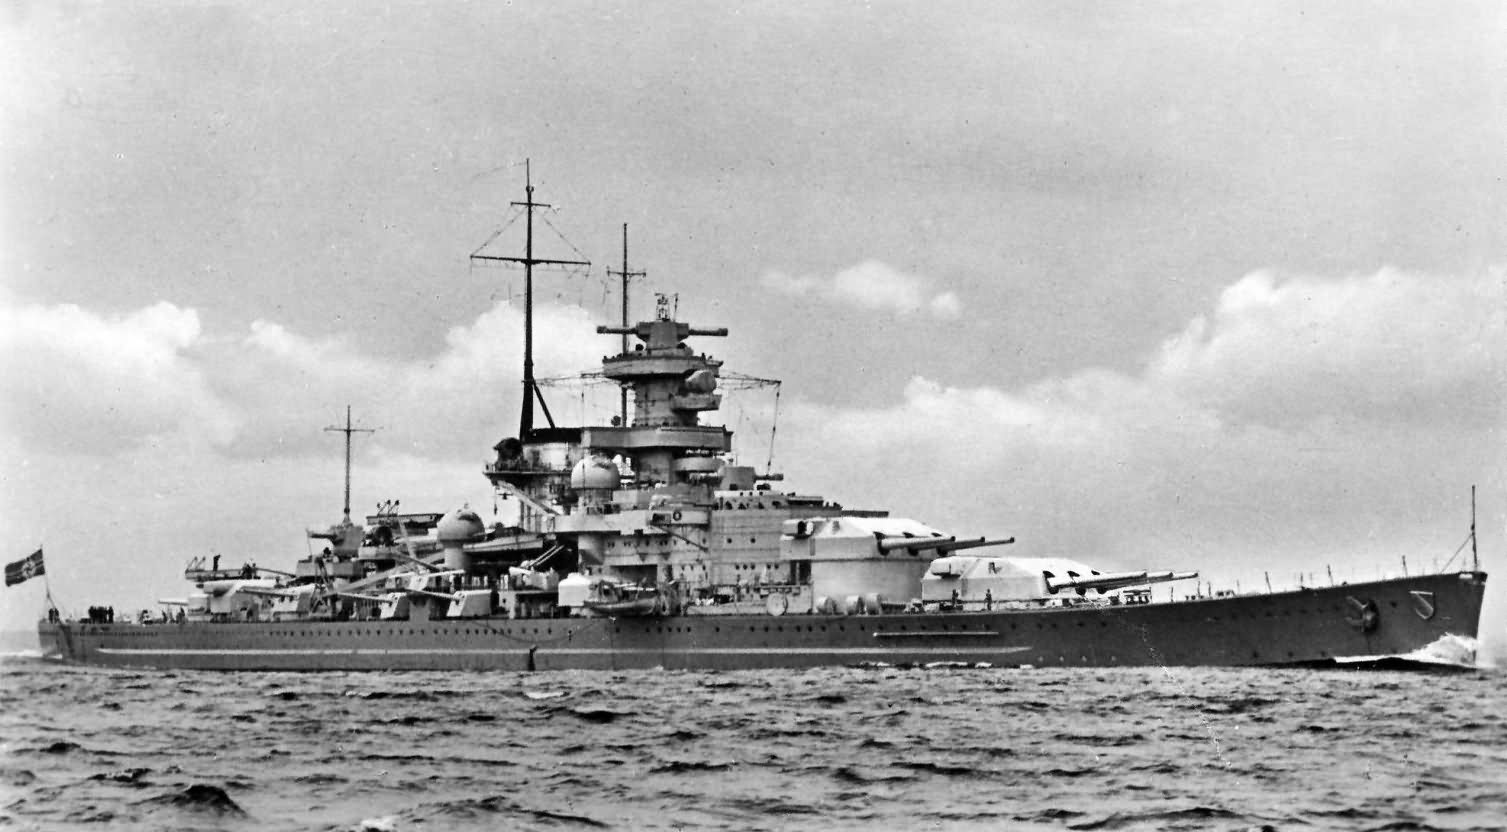 My Daily Kona The Sinking Of The German Battleship